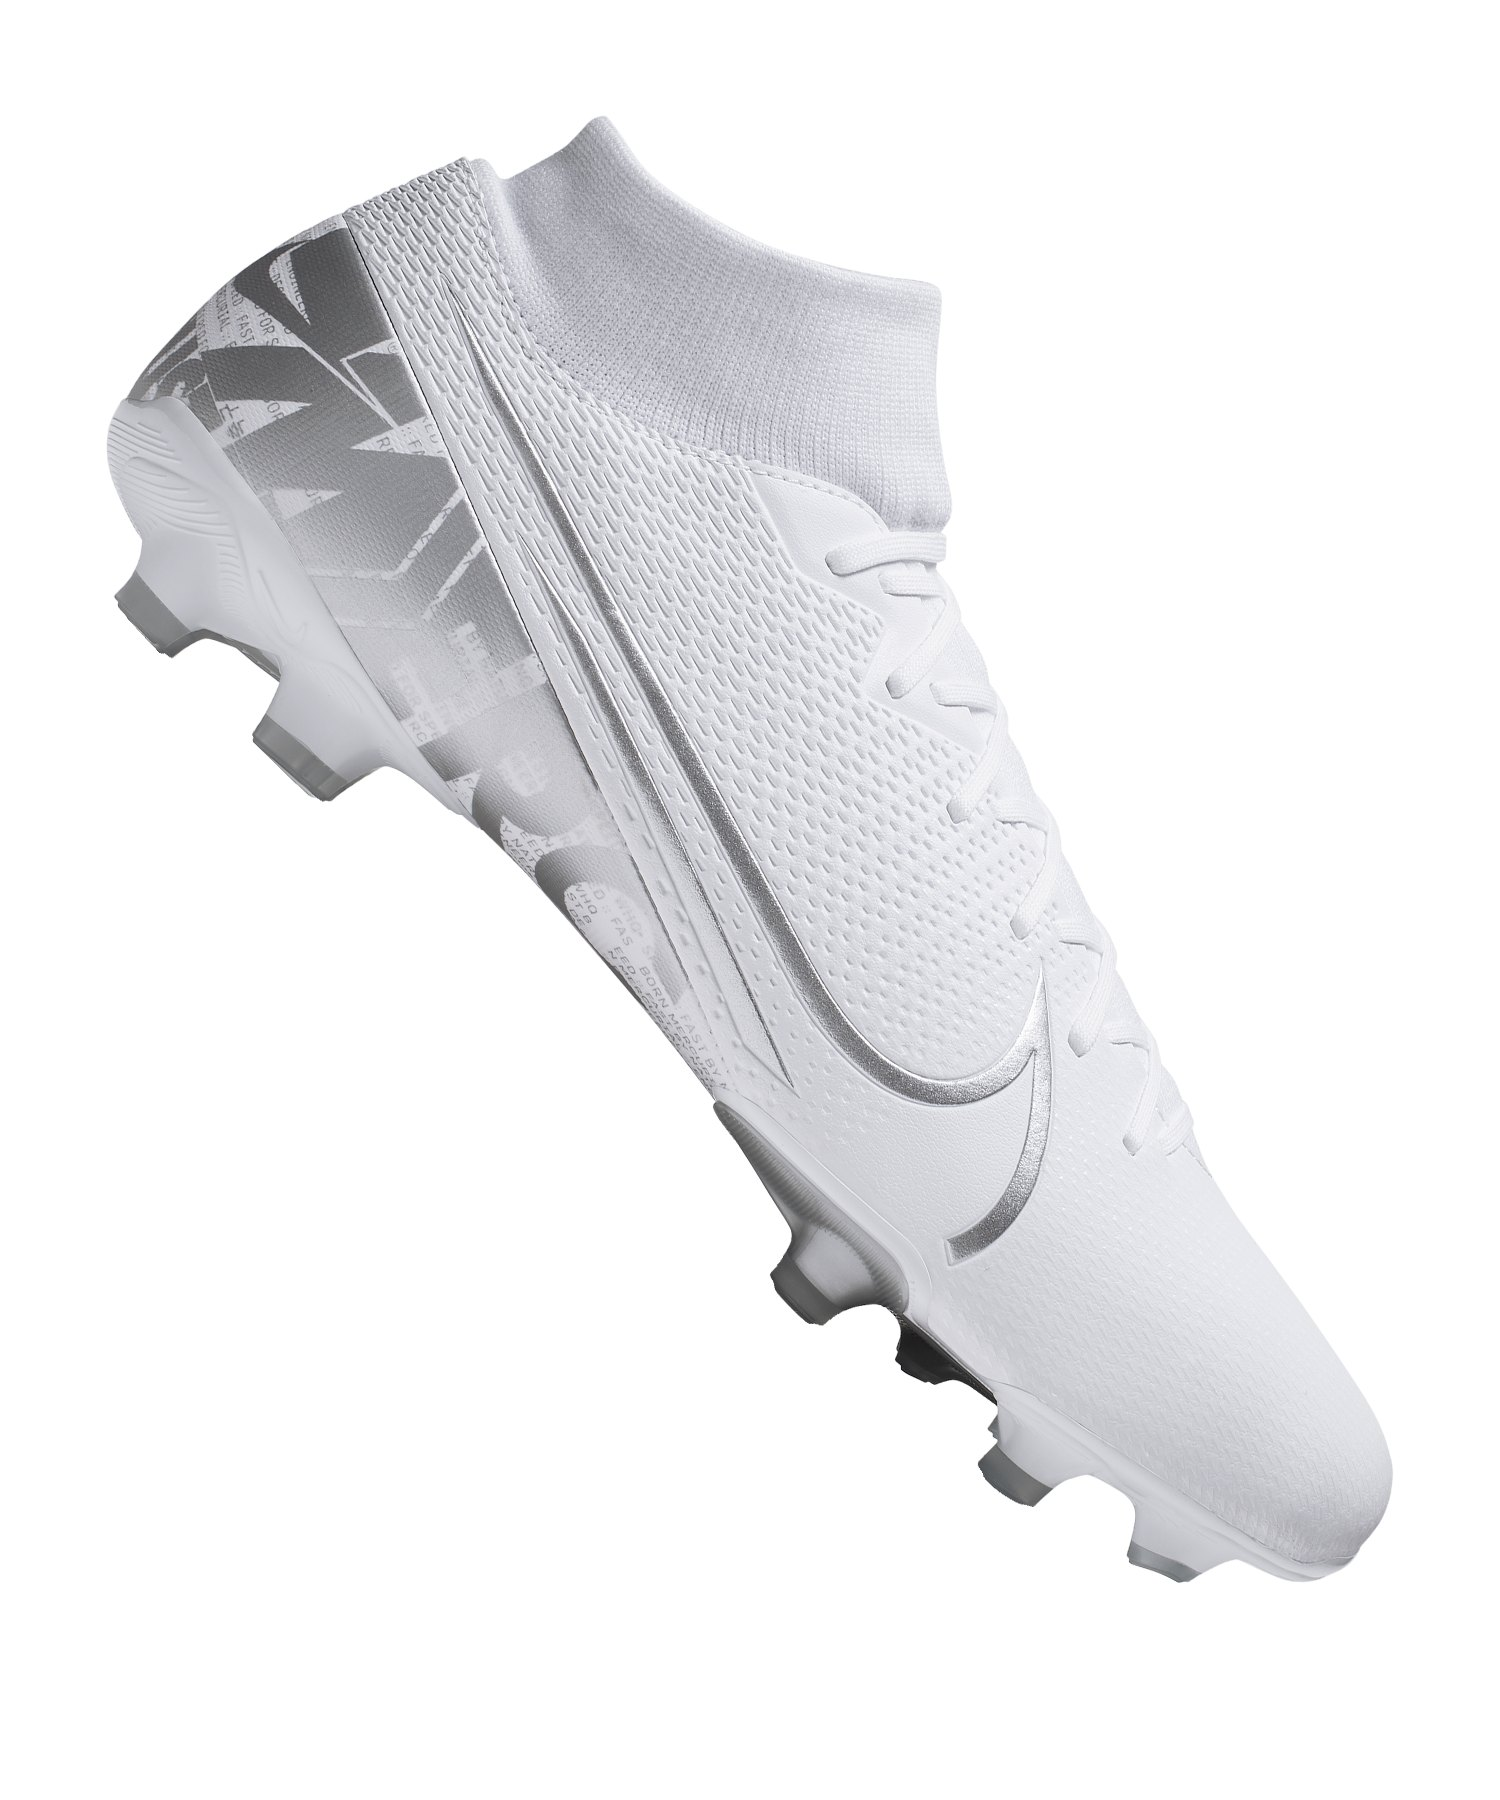 Nike Mercurial Superfly VII Academy FG/MG F100 - weiss